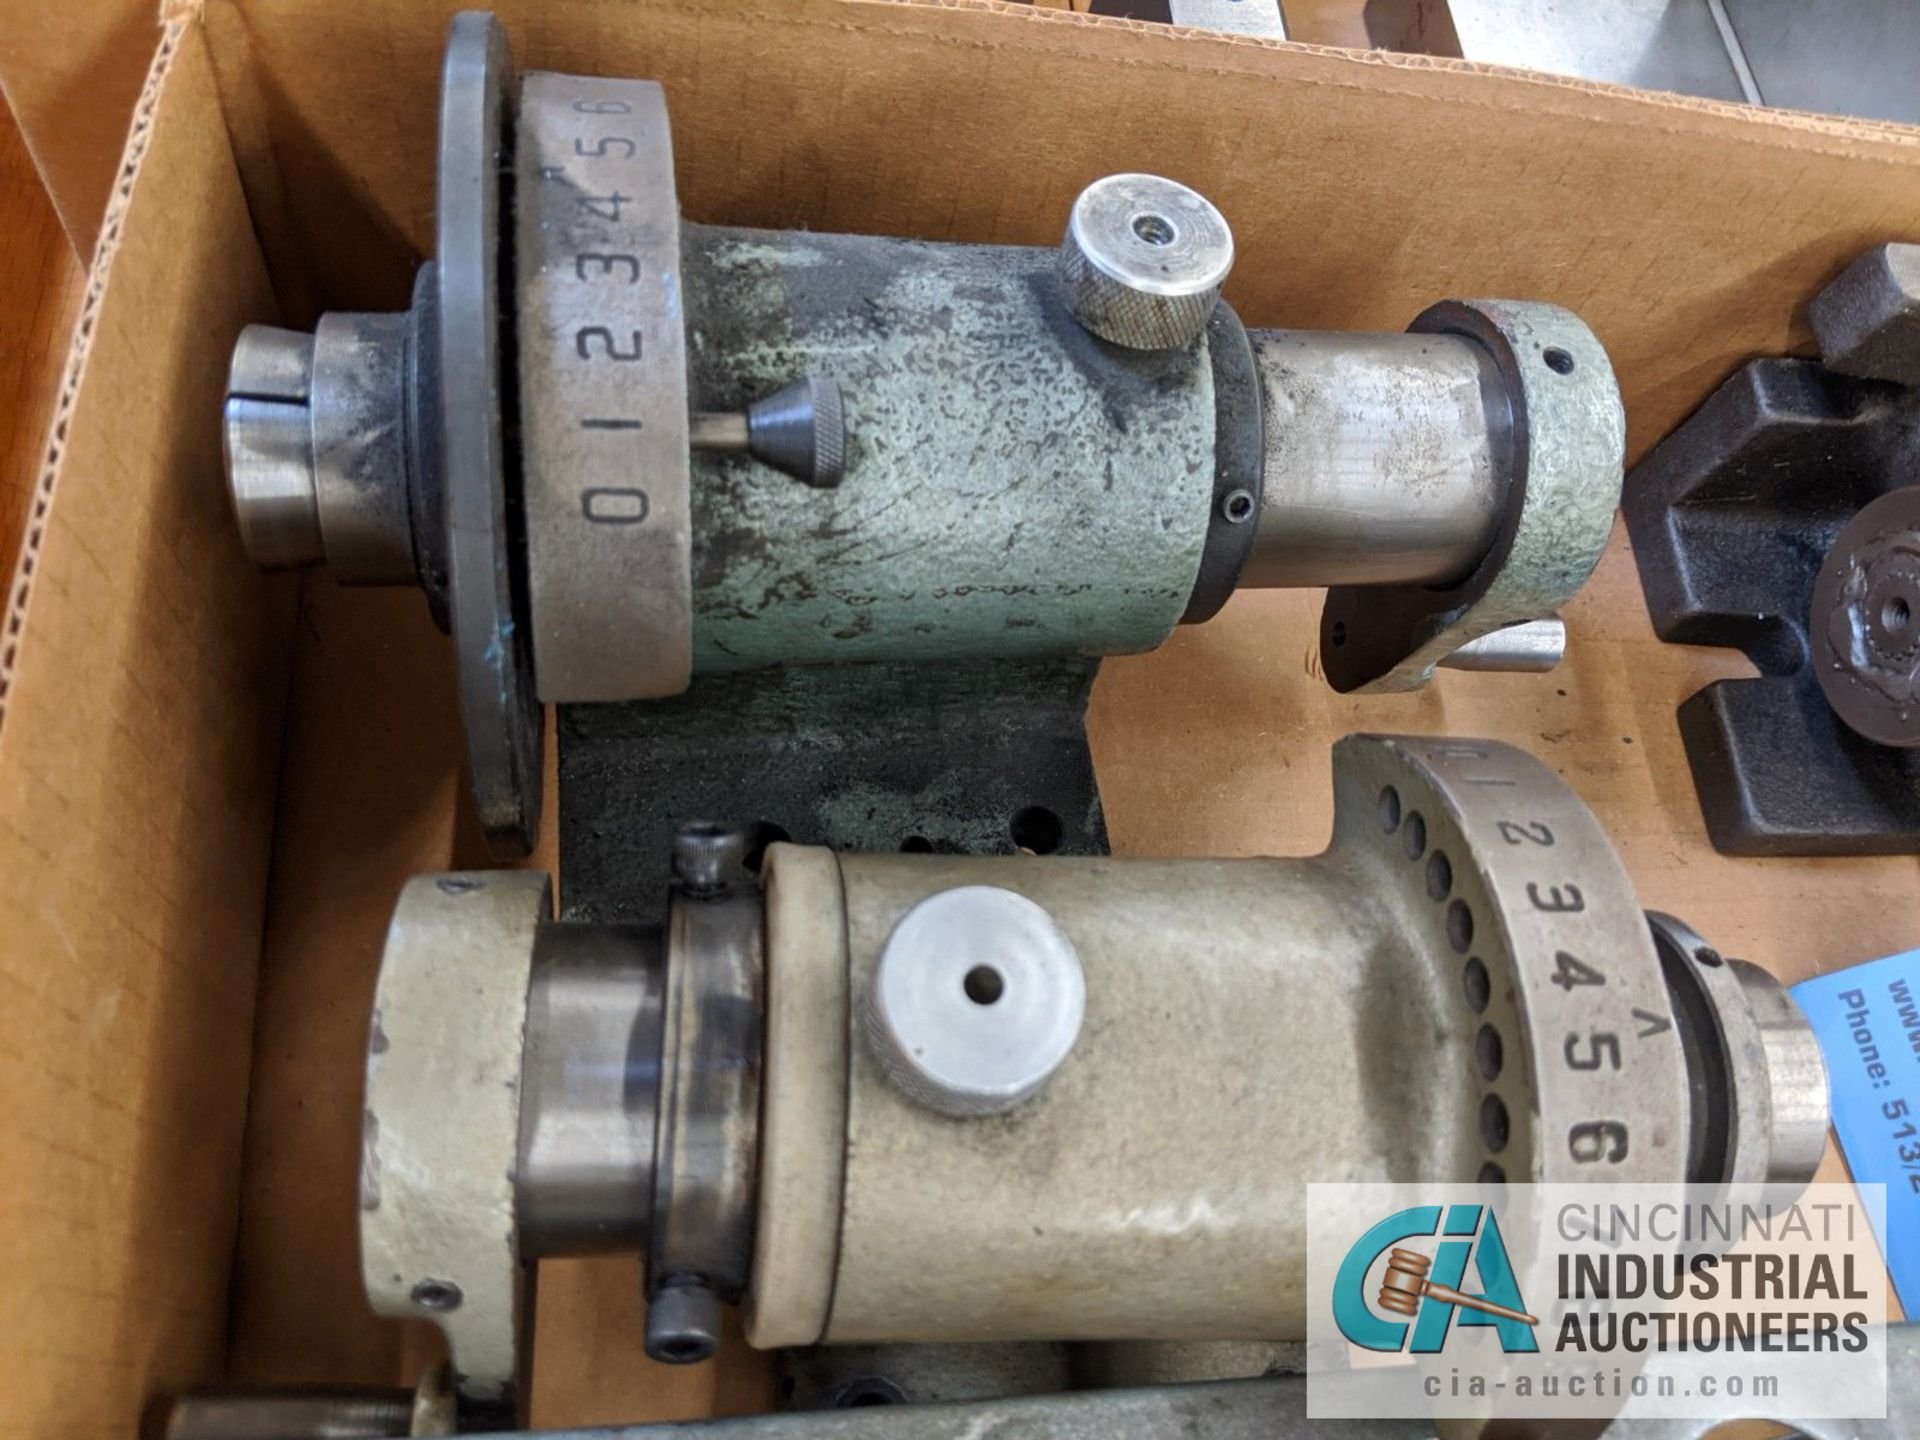 (LOT) ASSORTED 5C TOOLING; COLLETS AND SPIN FIXTURES - Image 2 of 5